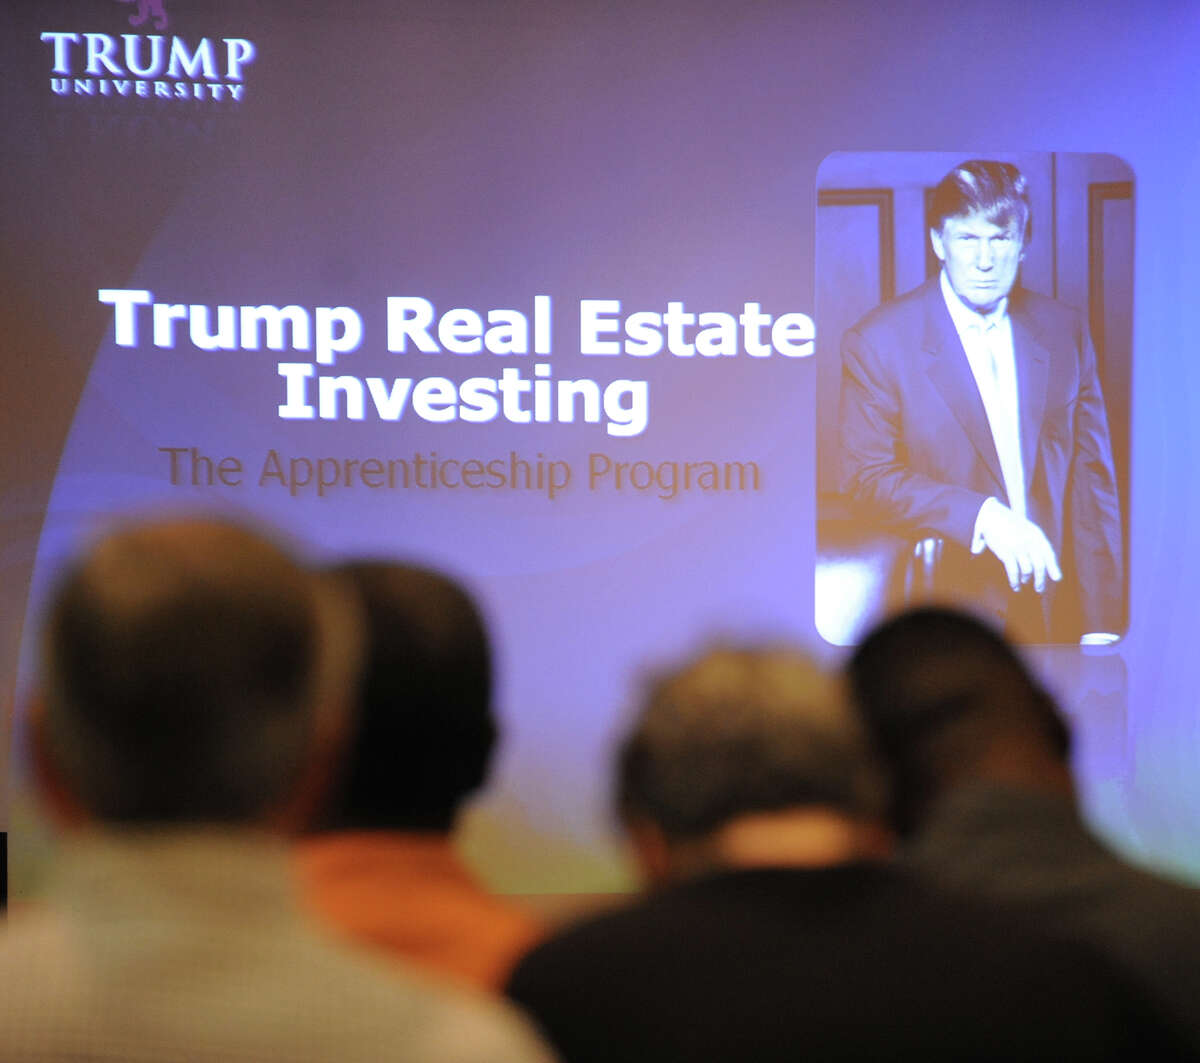 A seminar taught by the professors of Trump University. Donald Trump's photo is shown on the screen at the beginning of the presentation. Illustrates TRUMP-UNIVERSITY, (category a), by Emma Brown (c) 2015 The Washington Post. Moved Sunday, Sept. 13, 2015. (MUST CREDIT: Washington Post photo by Sarah L. Voisin).